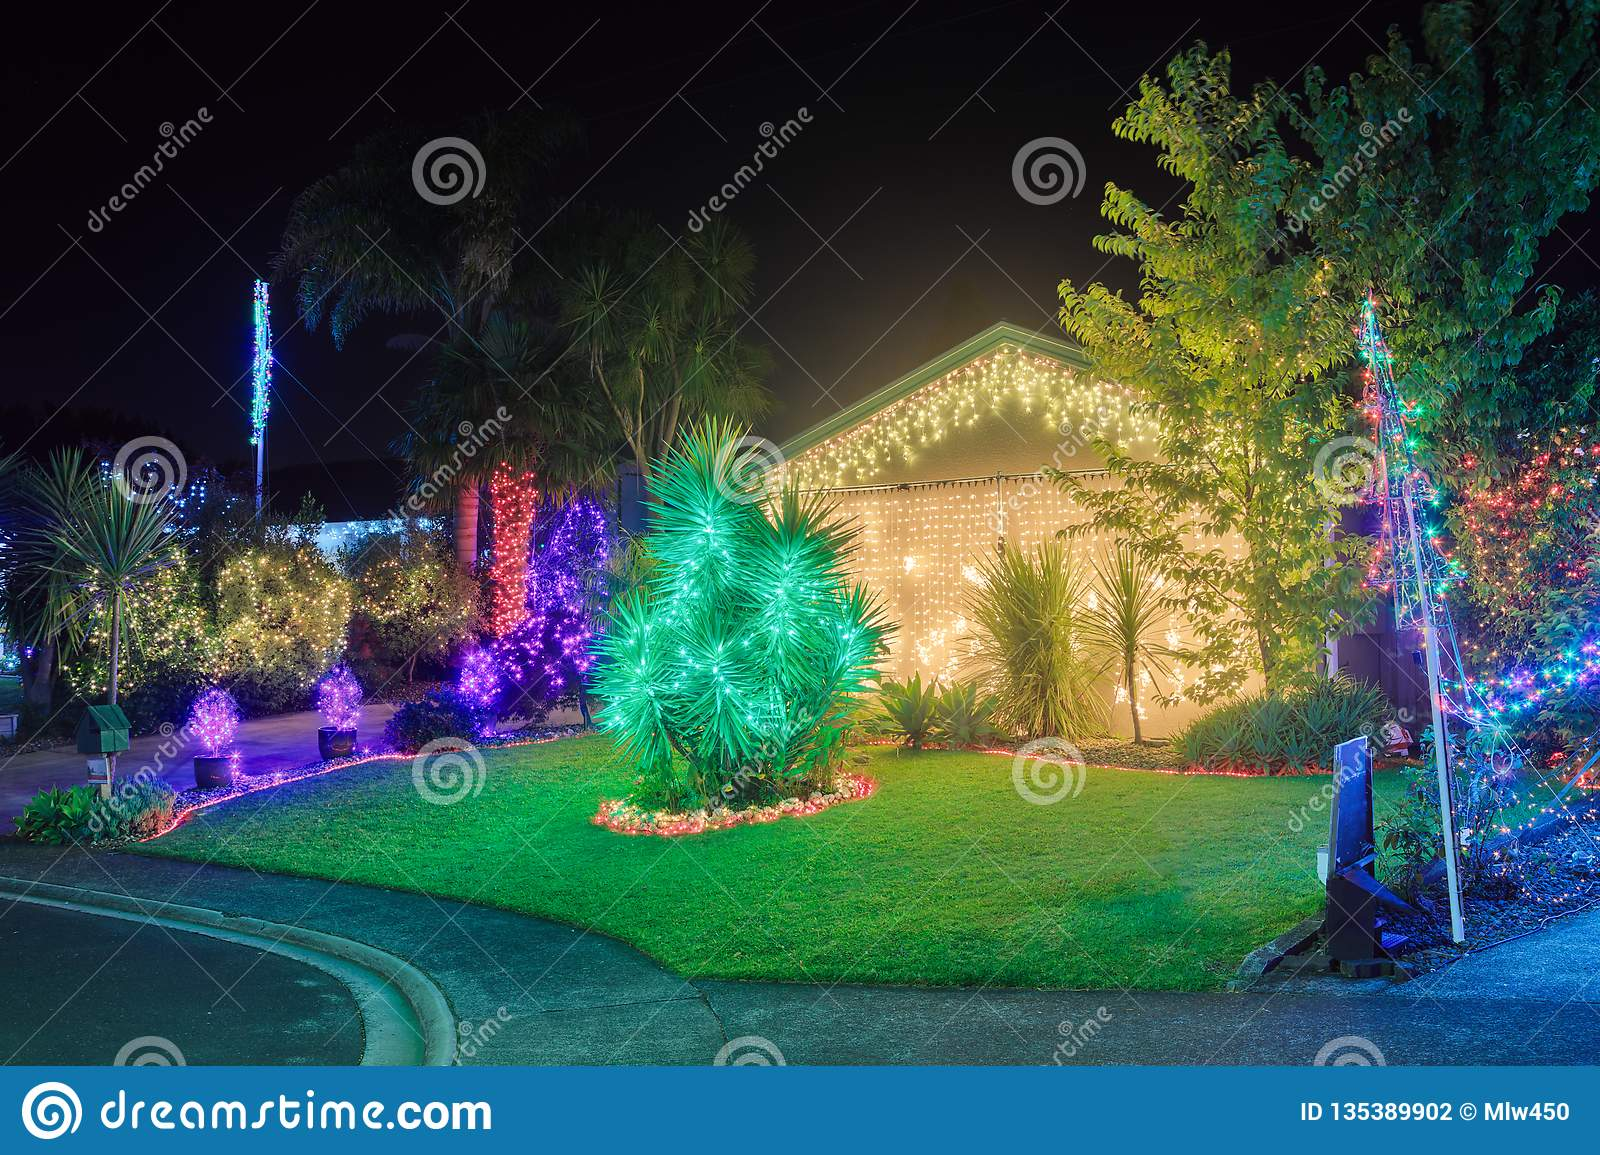 Colorful Christmas Lights On House.House And Garden Brightly Lit With Multicolored Christmas